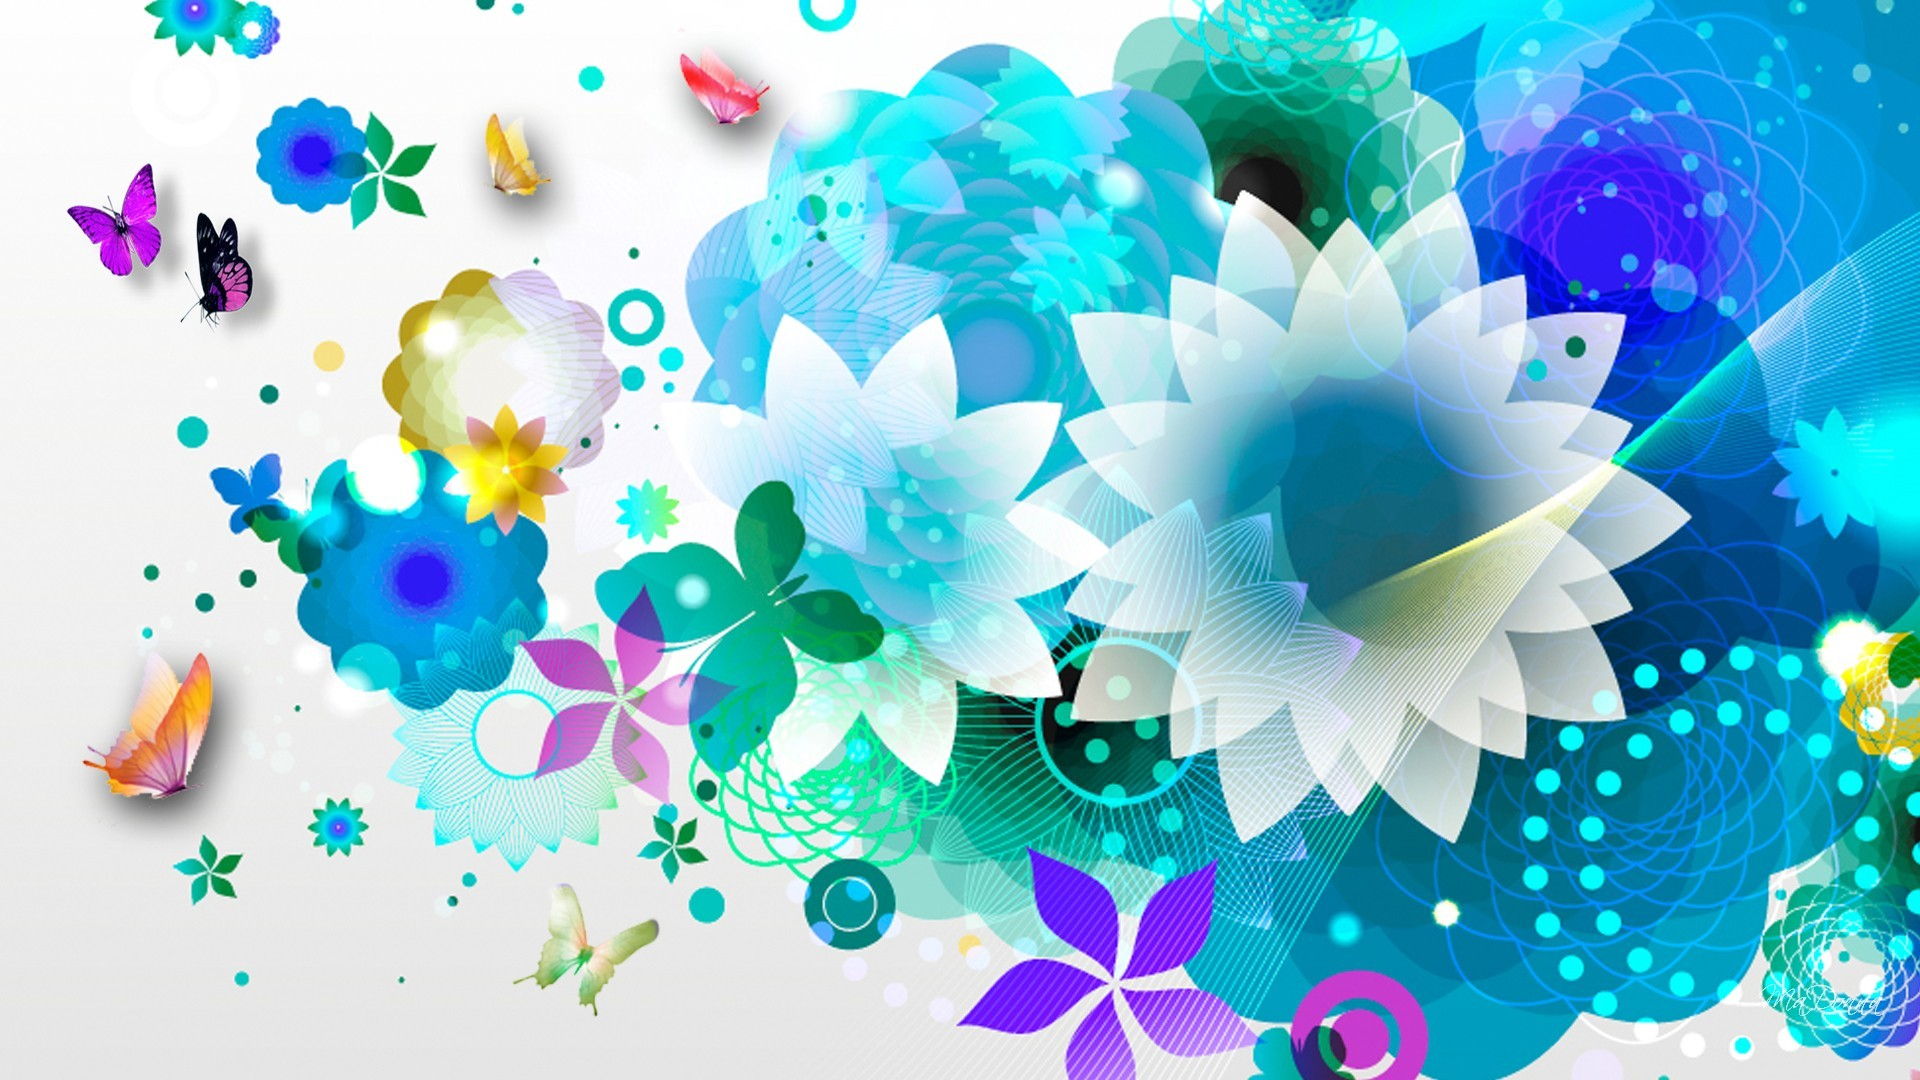 Res: 1920x1080, Blue Flower Wallpapers